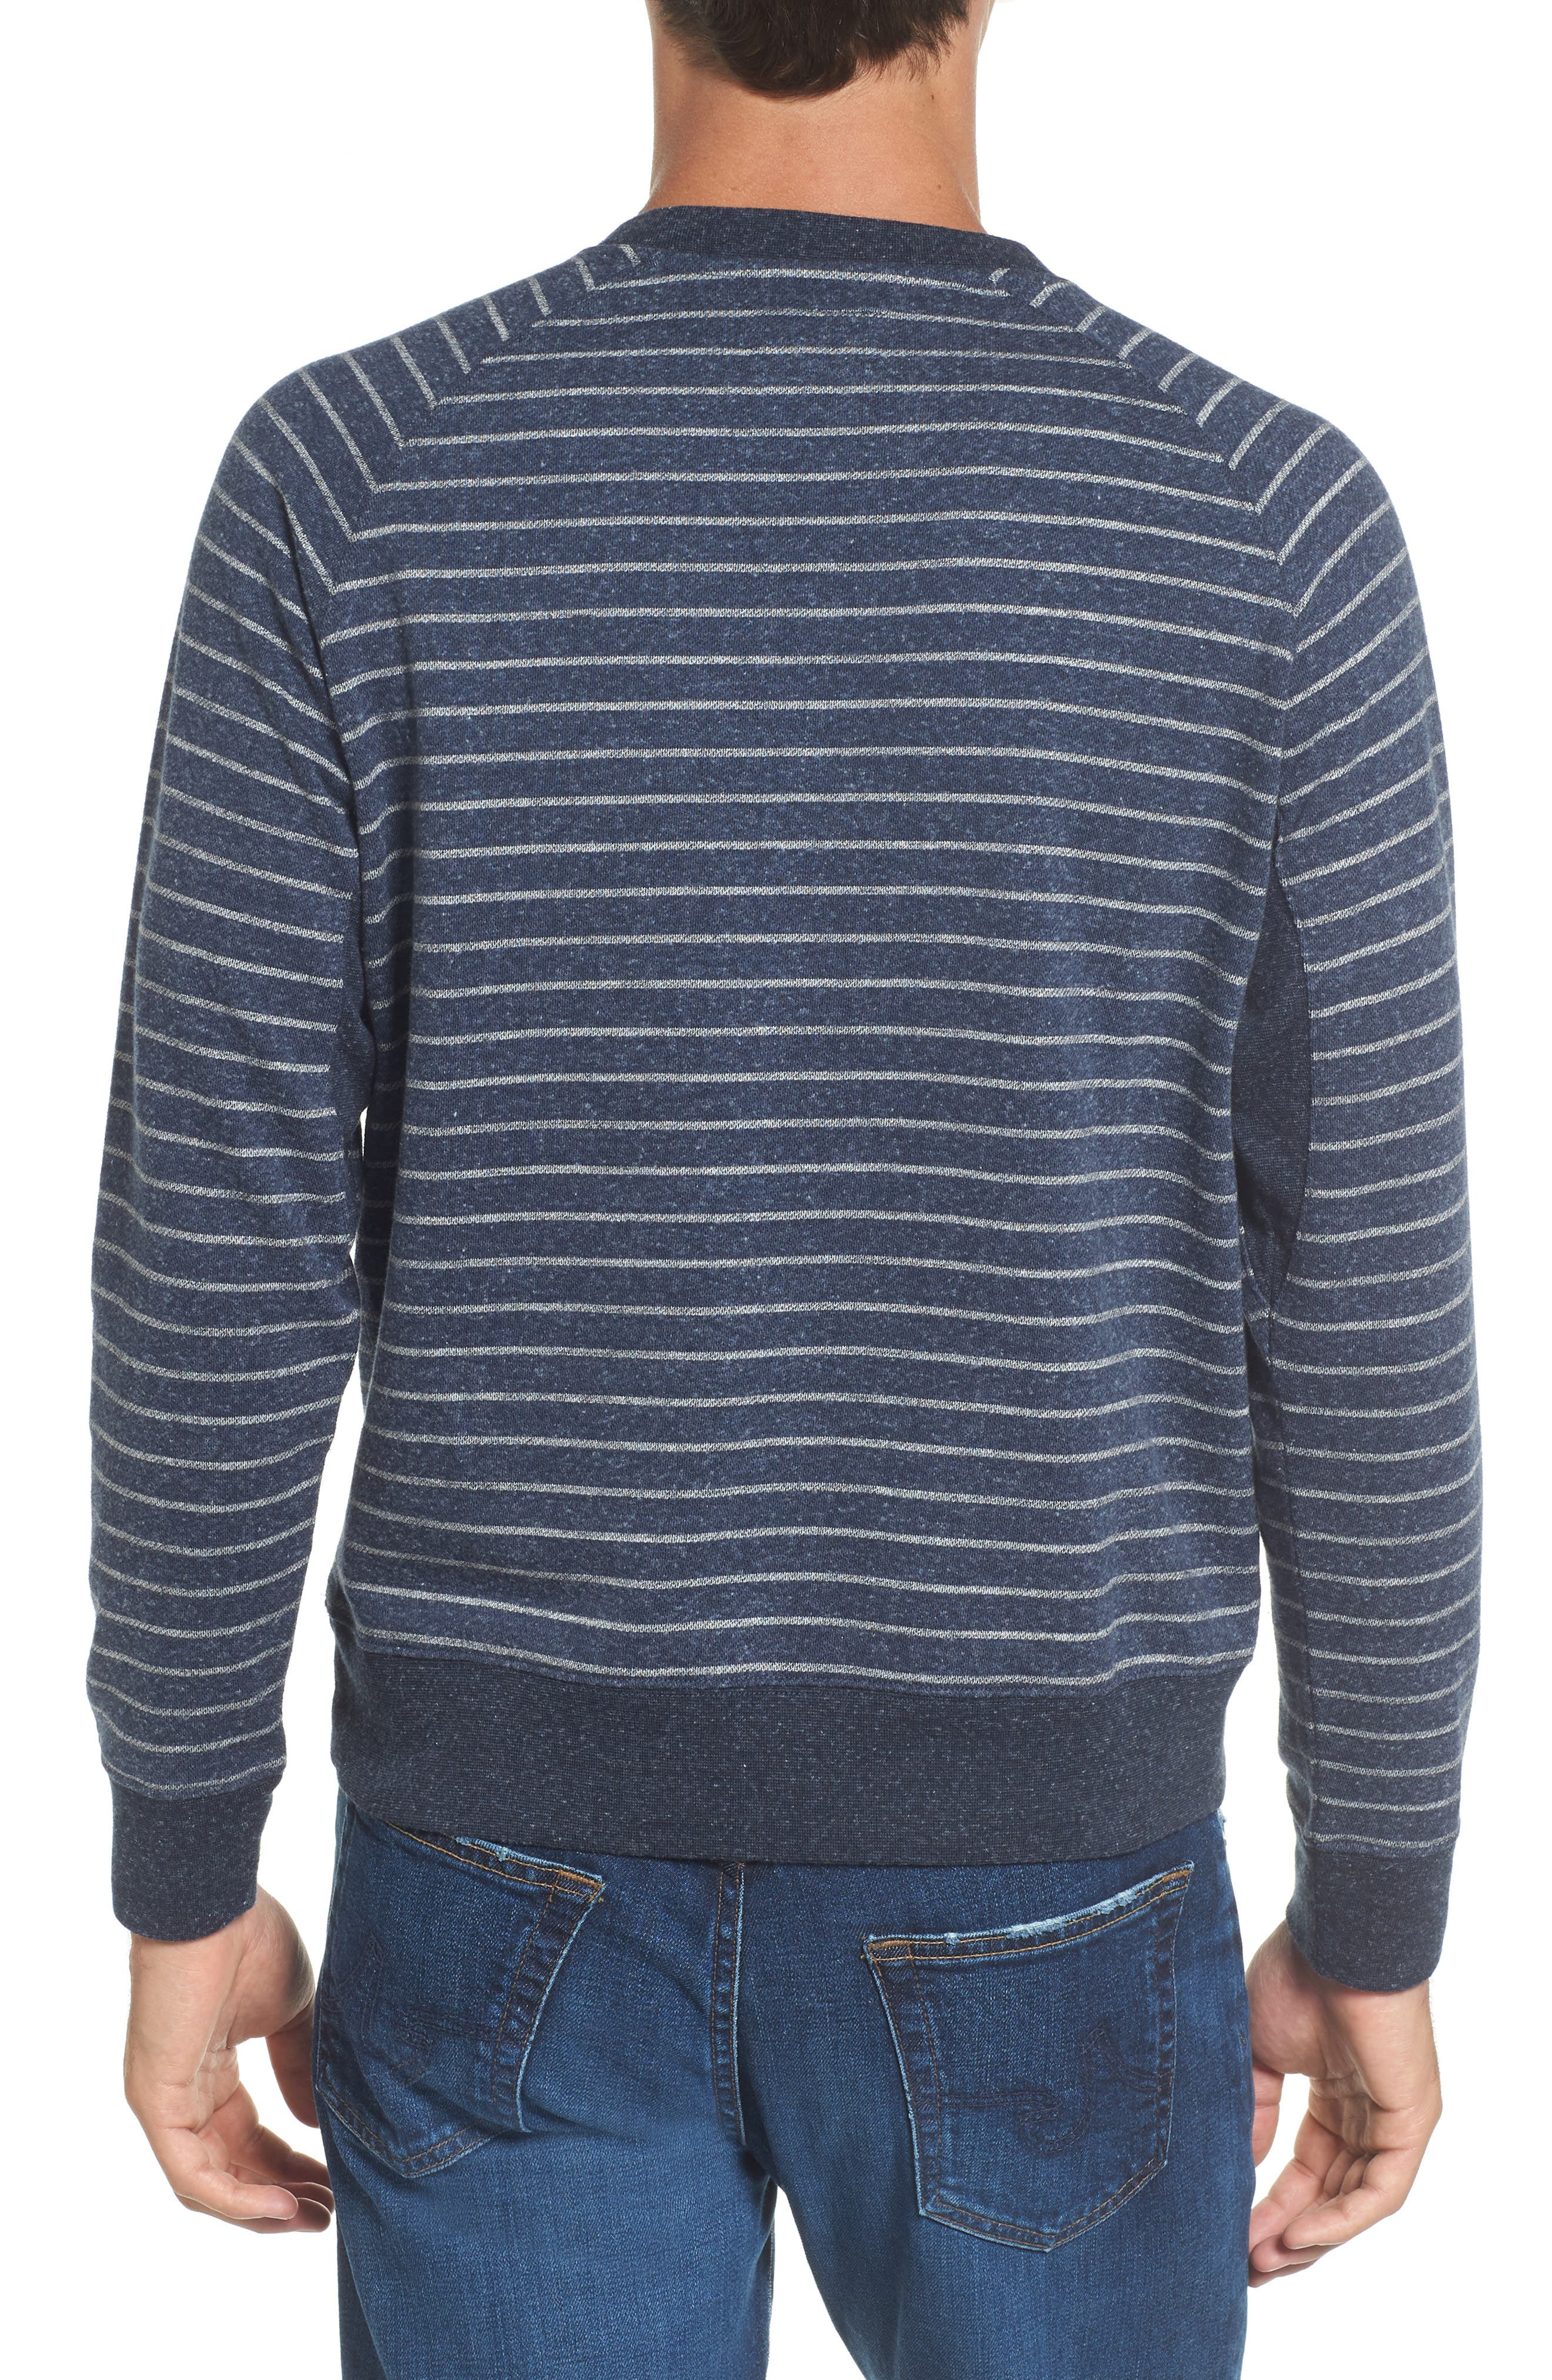 Palmer Modern Fit Athletic Stripe Sweatshirt,                             Alternate thumbnail 3, color,                             Navy/ Gray Heather